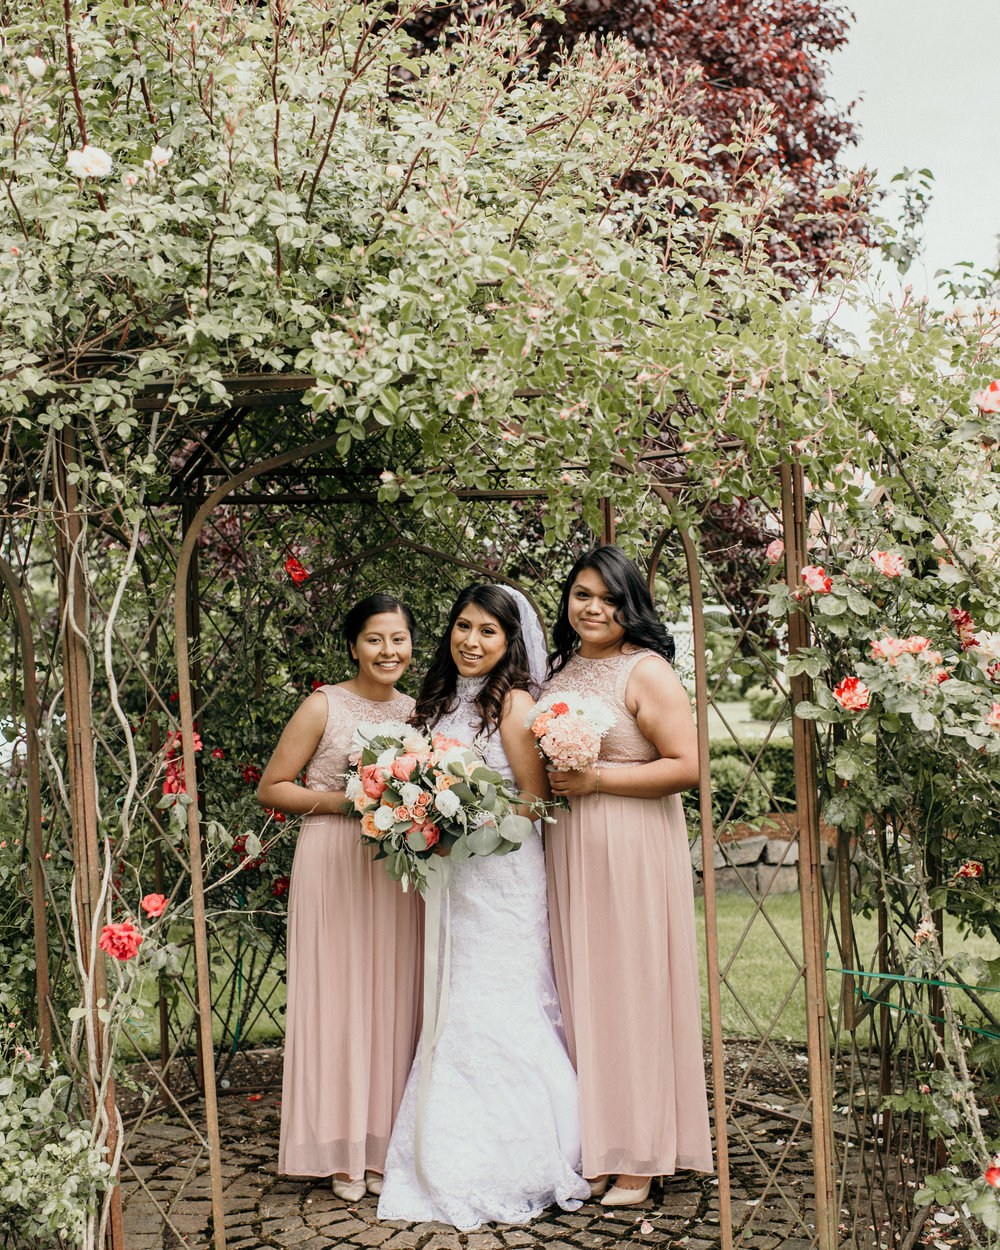 008 Spring Wedding_Garden Wedding_Montana Wedding_Missoula Wedding Photographer_Bozeman Wedding Photographer_Montana Wedding Photographer_Kelsey Lane Photography_Yoselin + Daniel Wedding-2-255.jpg